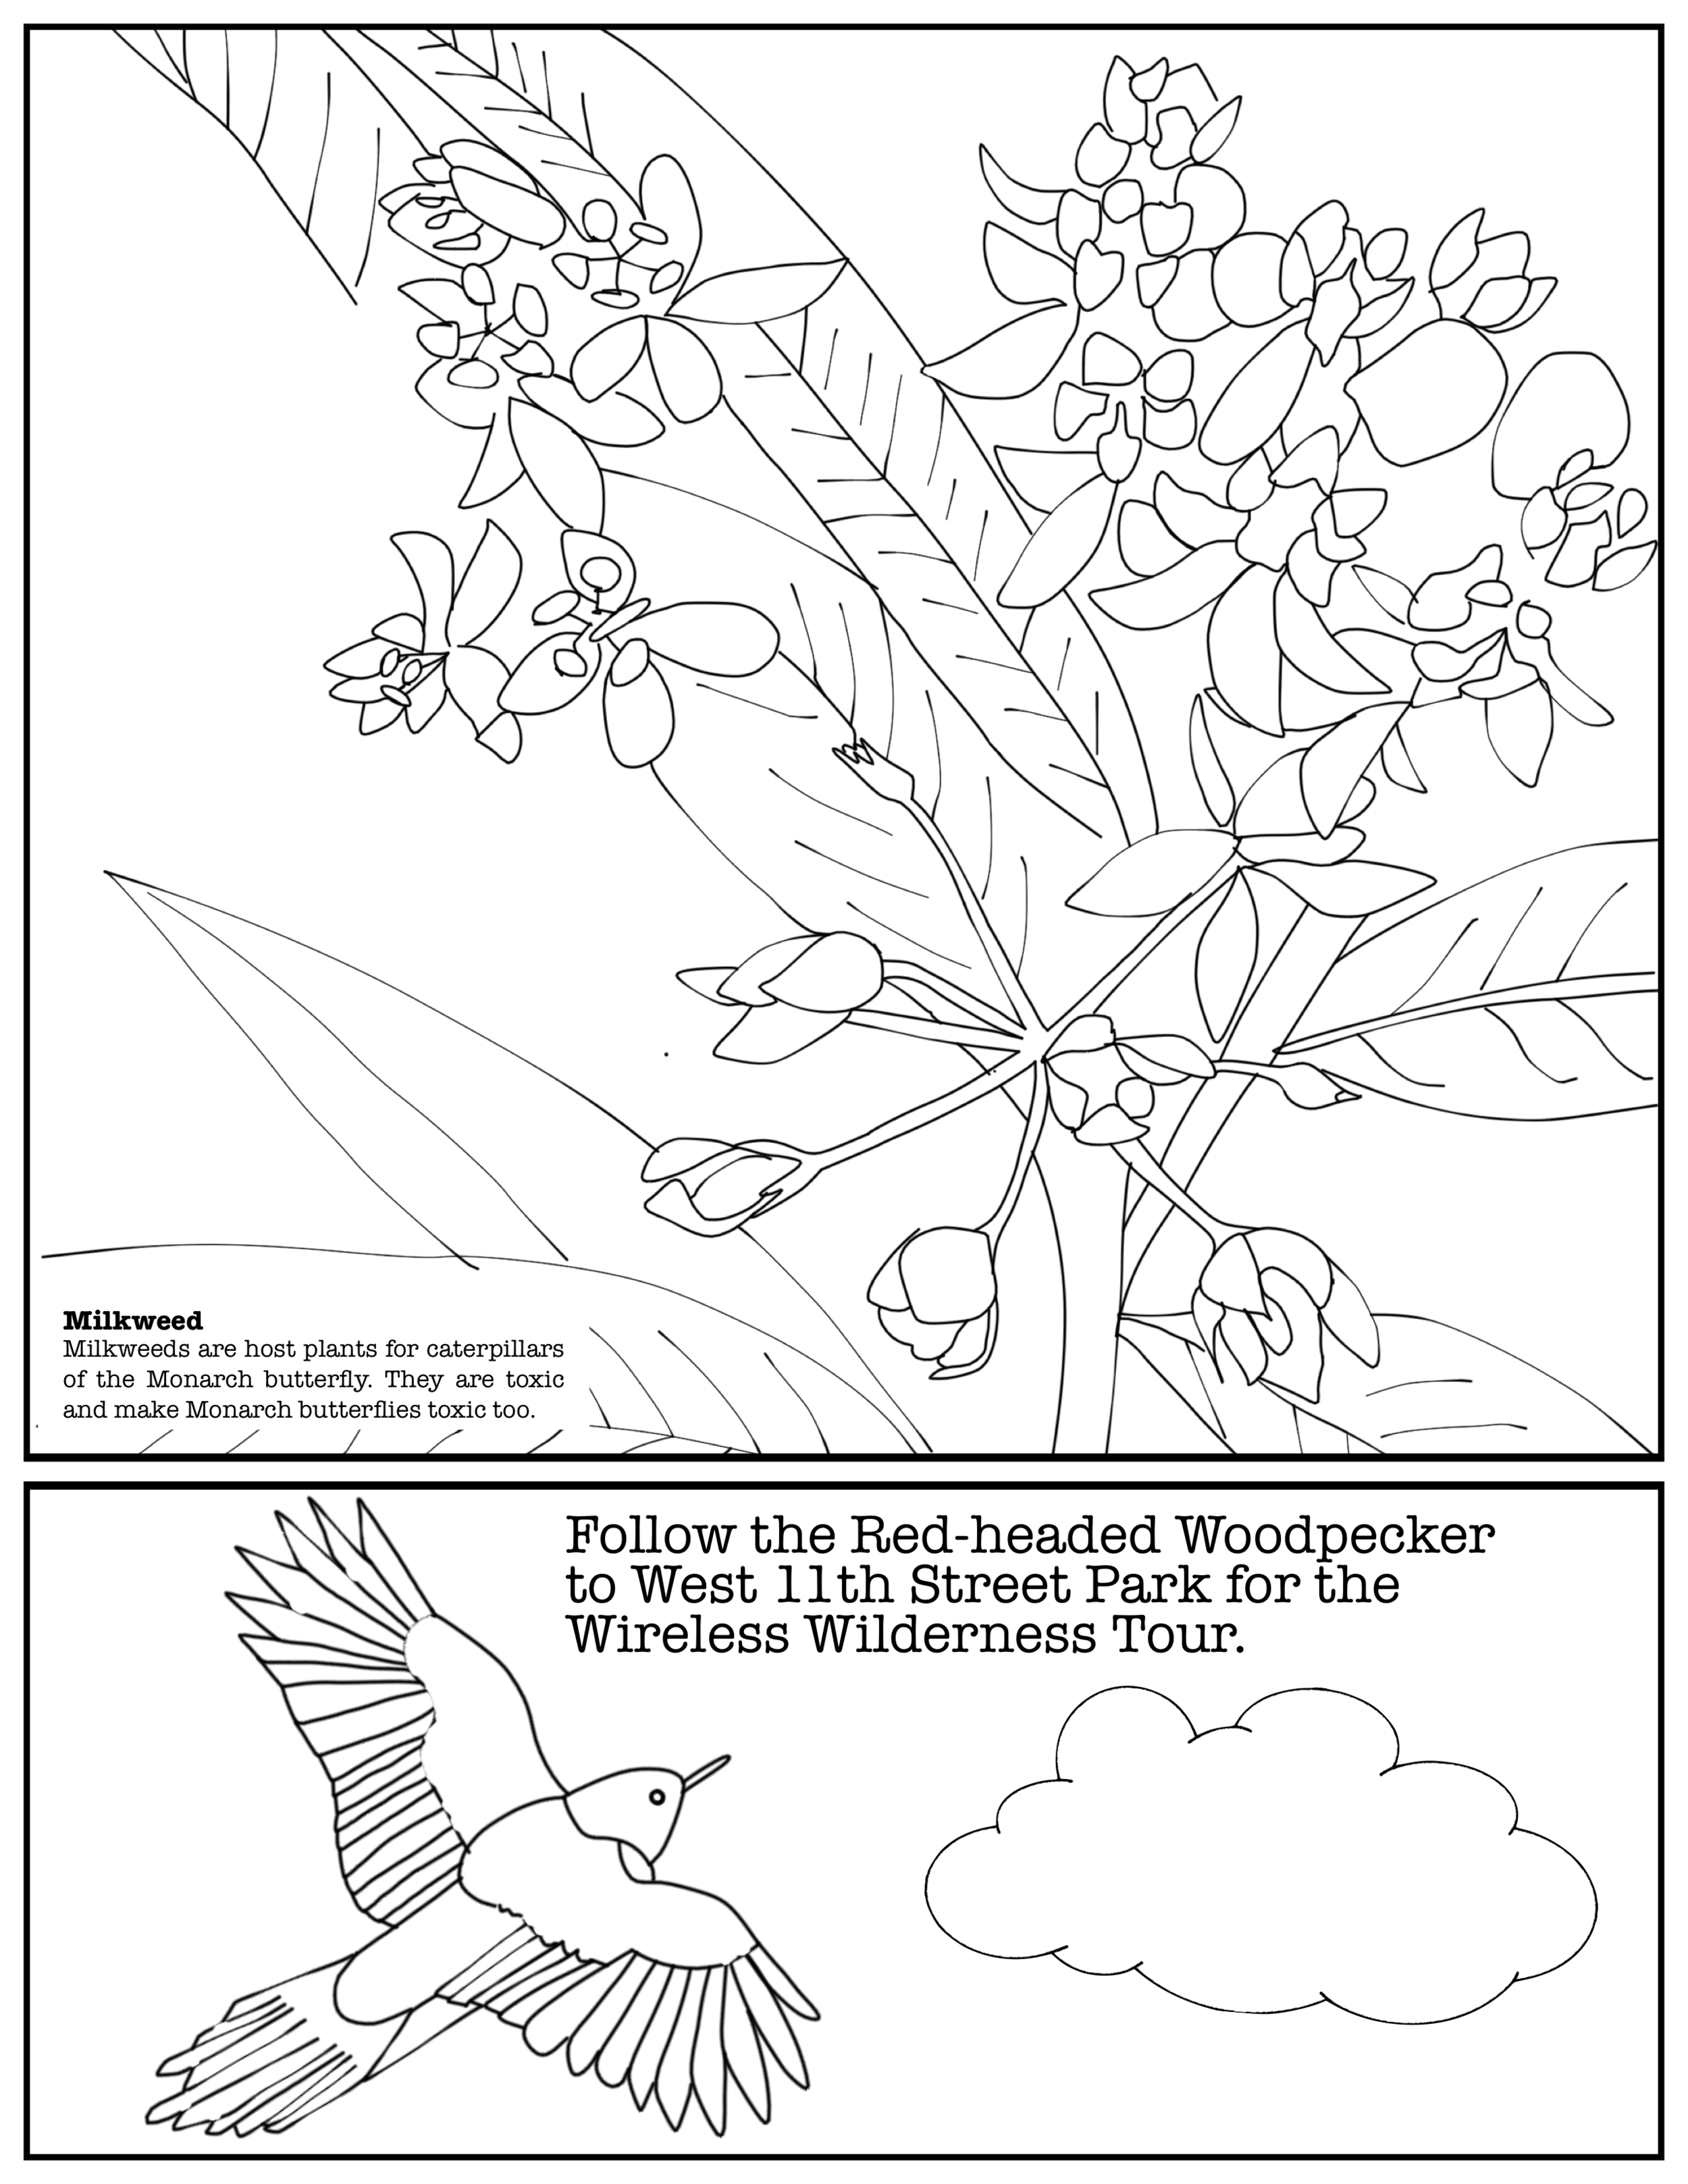 Coloring Book Layout 3.png